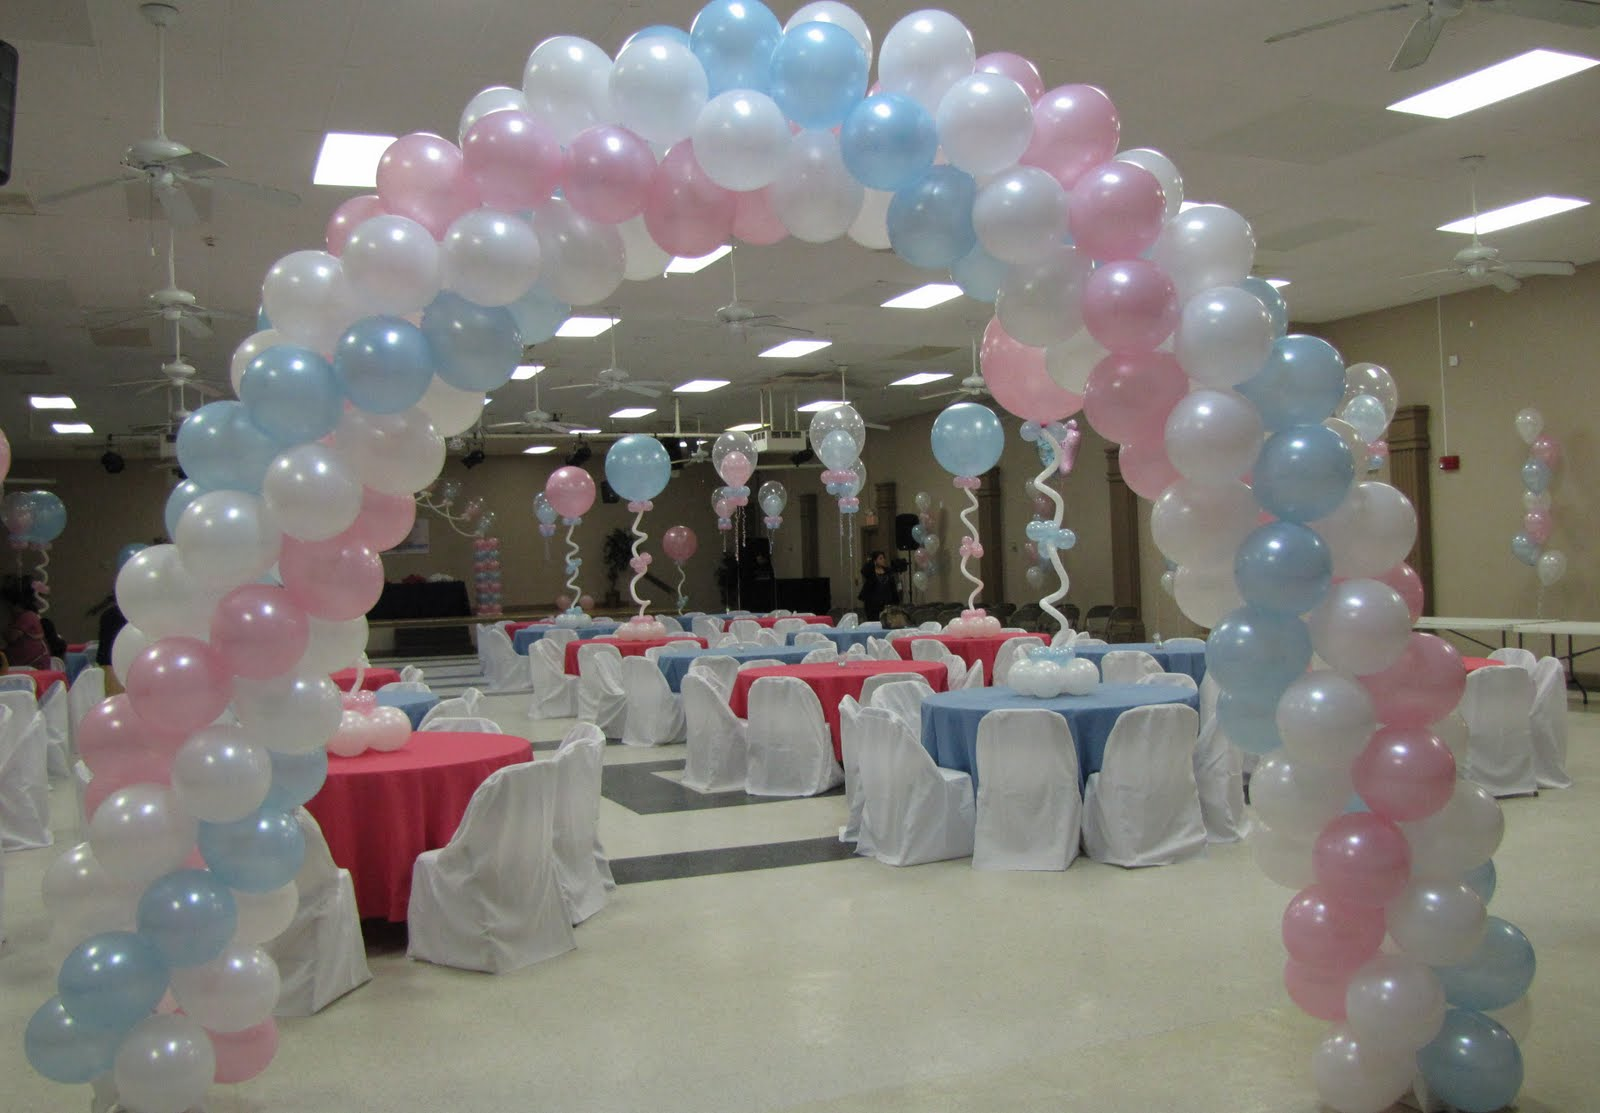 Balloons decorations for baby shower party favors ideas for Baby shower decoration pics